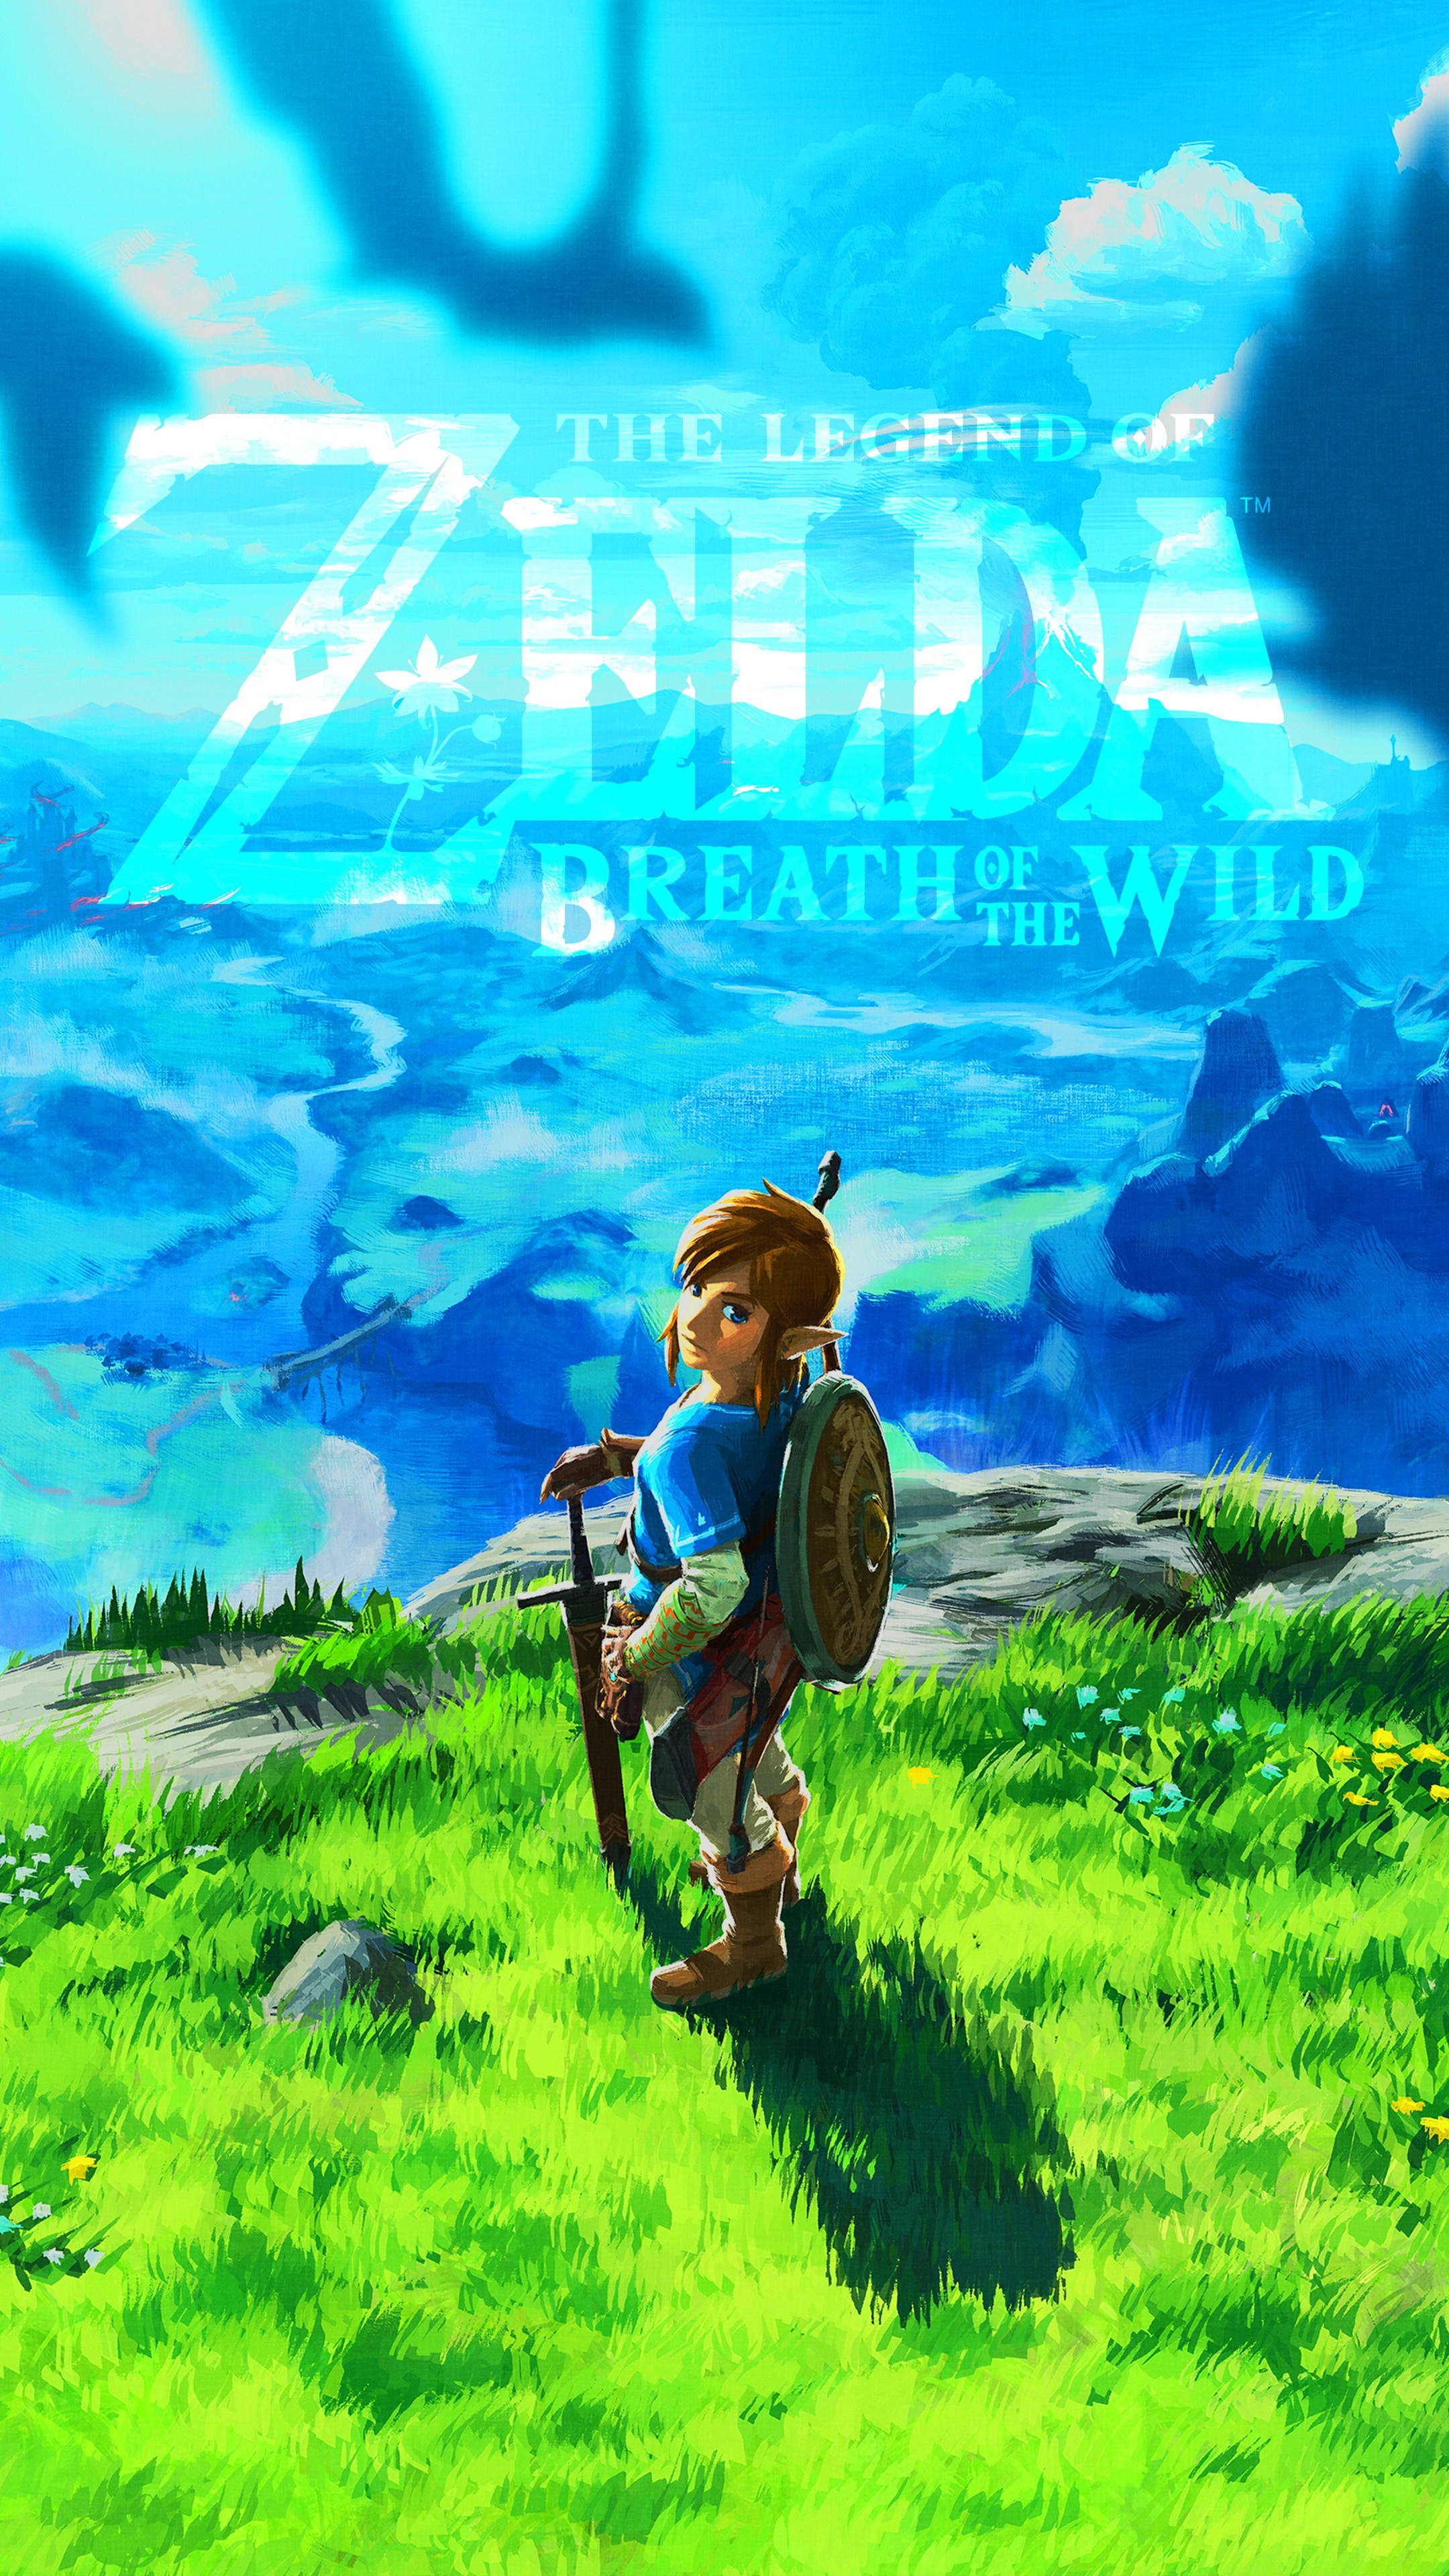 All Wallpapers Are Created Based On Assets Provided - Zelda Breath Of The Wild Wallpaper Iphone , HD Wallpaper & Backgrounds